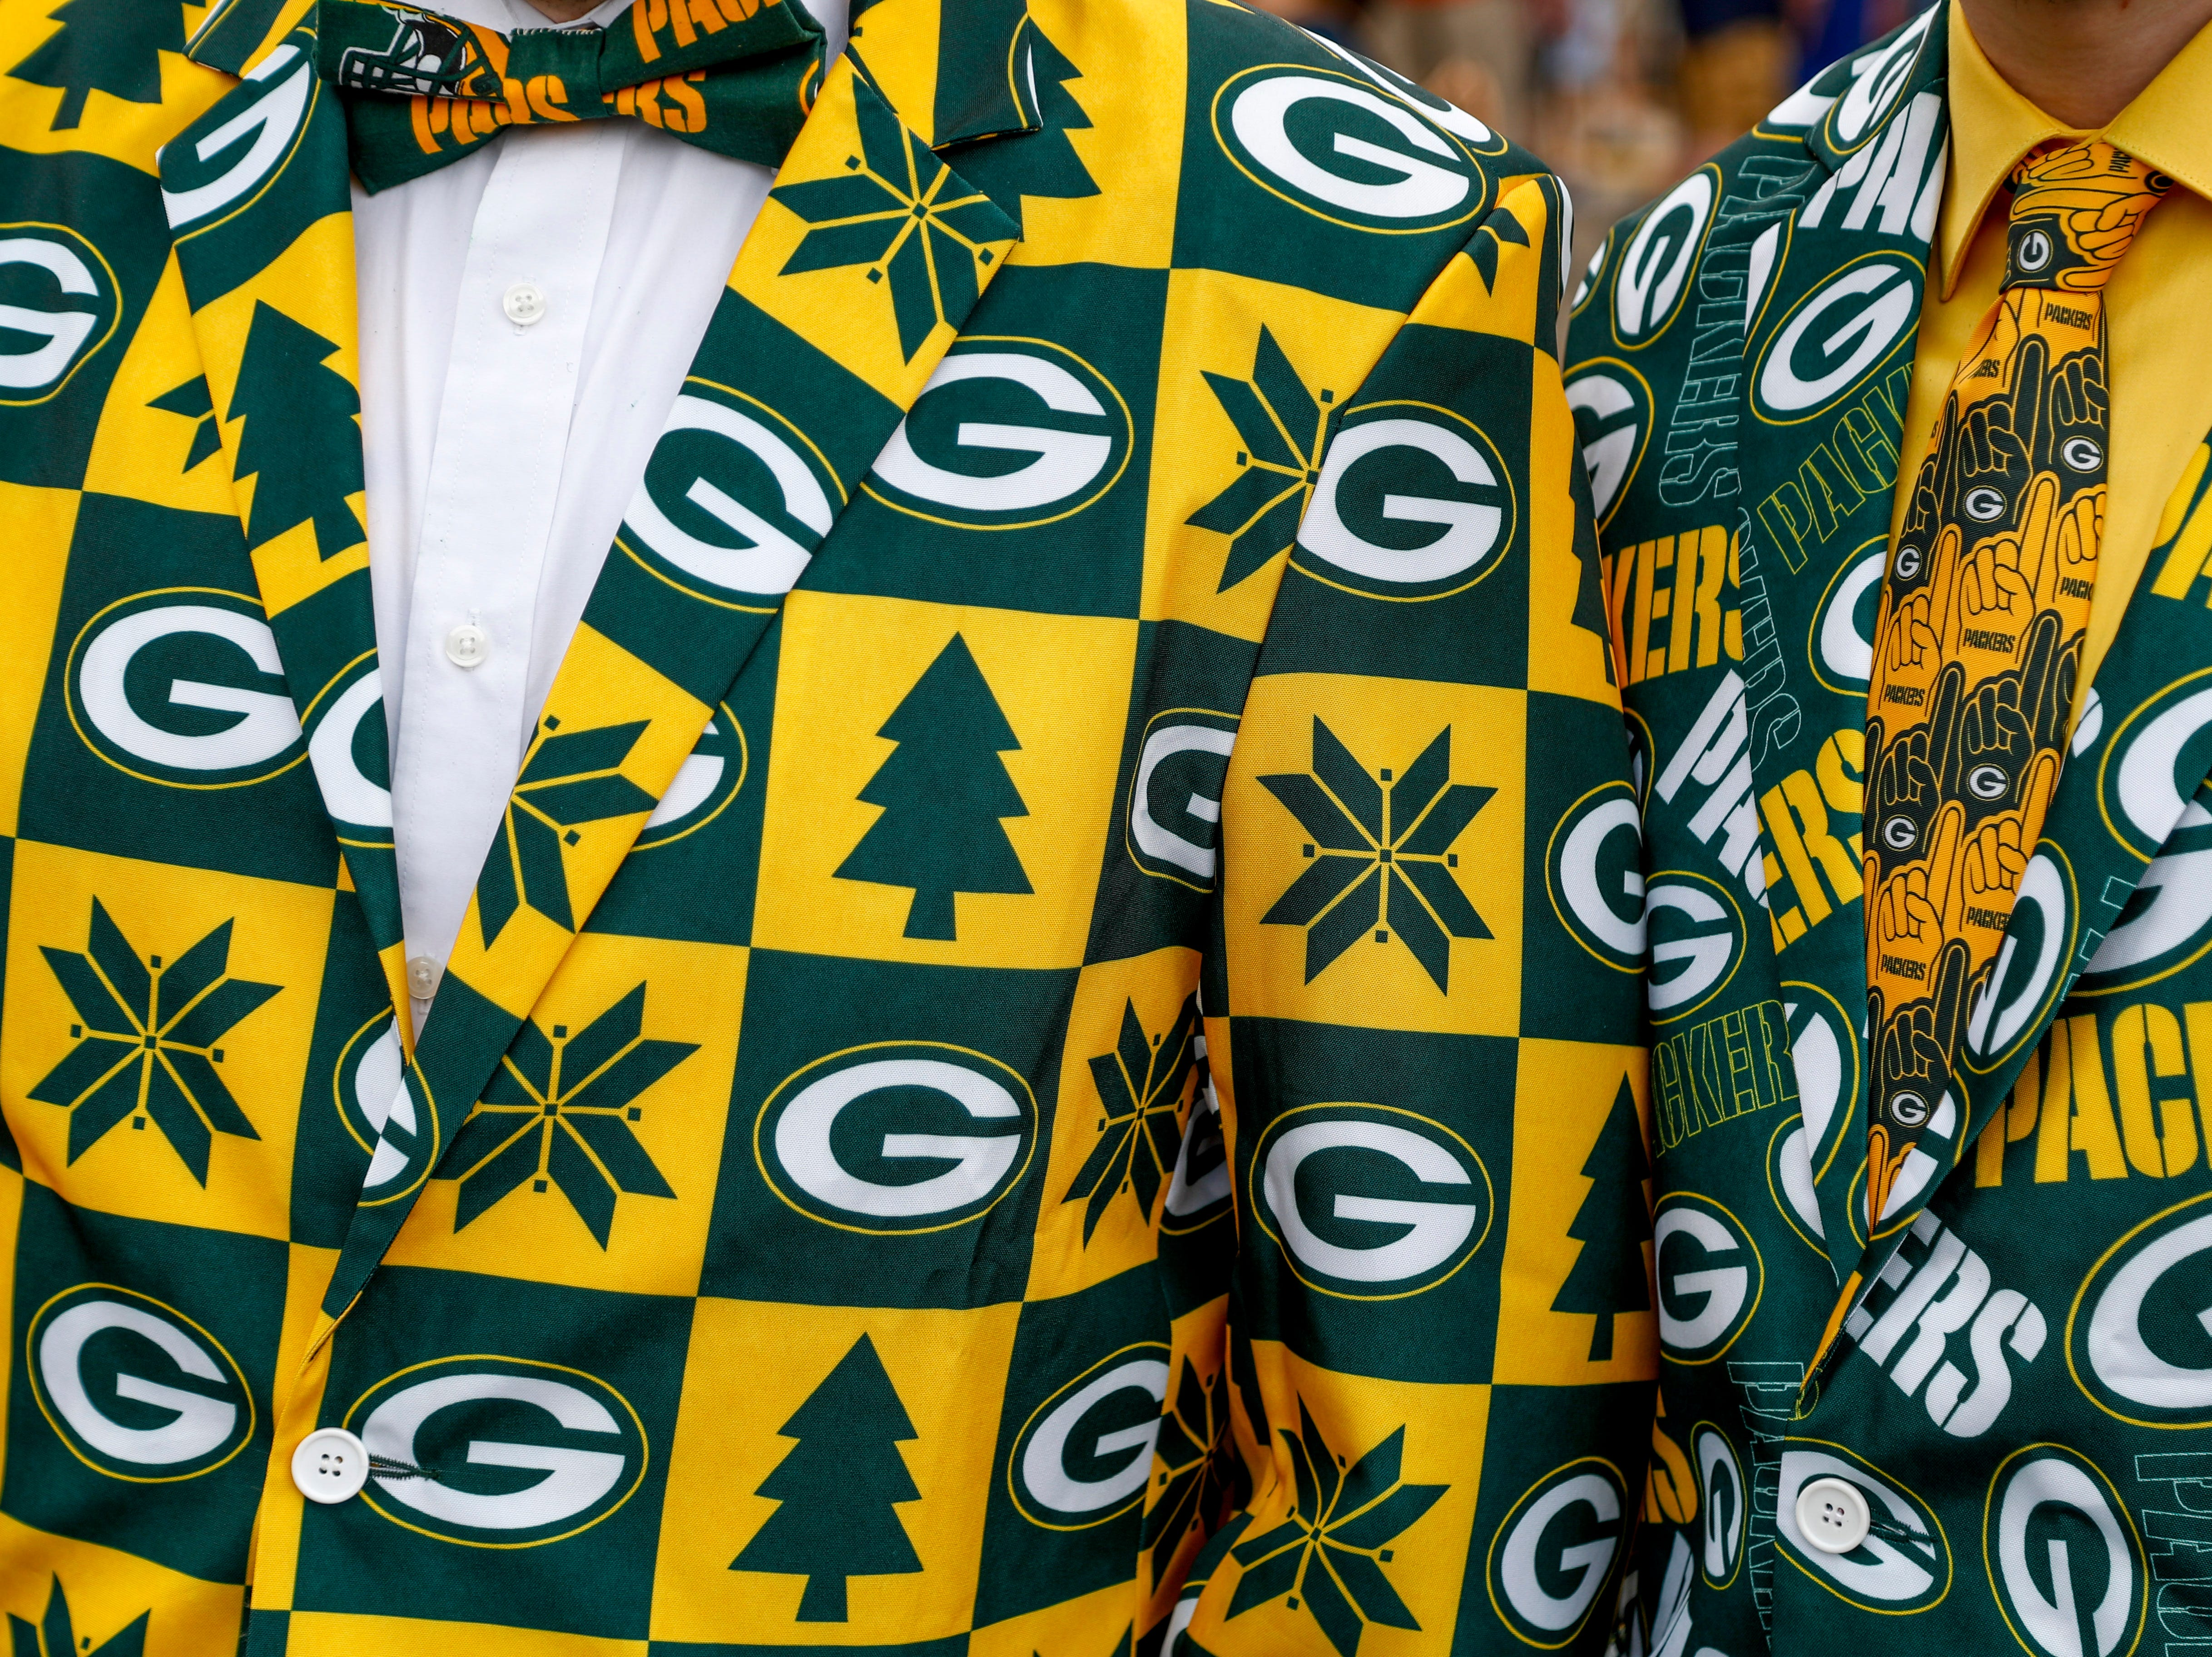 Packers fans strut bowties and jackets to compliment their team outfits during the NFL Draft Experience at Nissan Stadium in Nashville, Tenn., on Thursday, April 25, 2019.